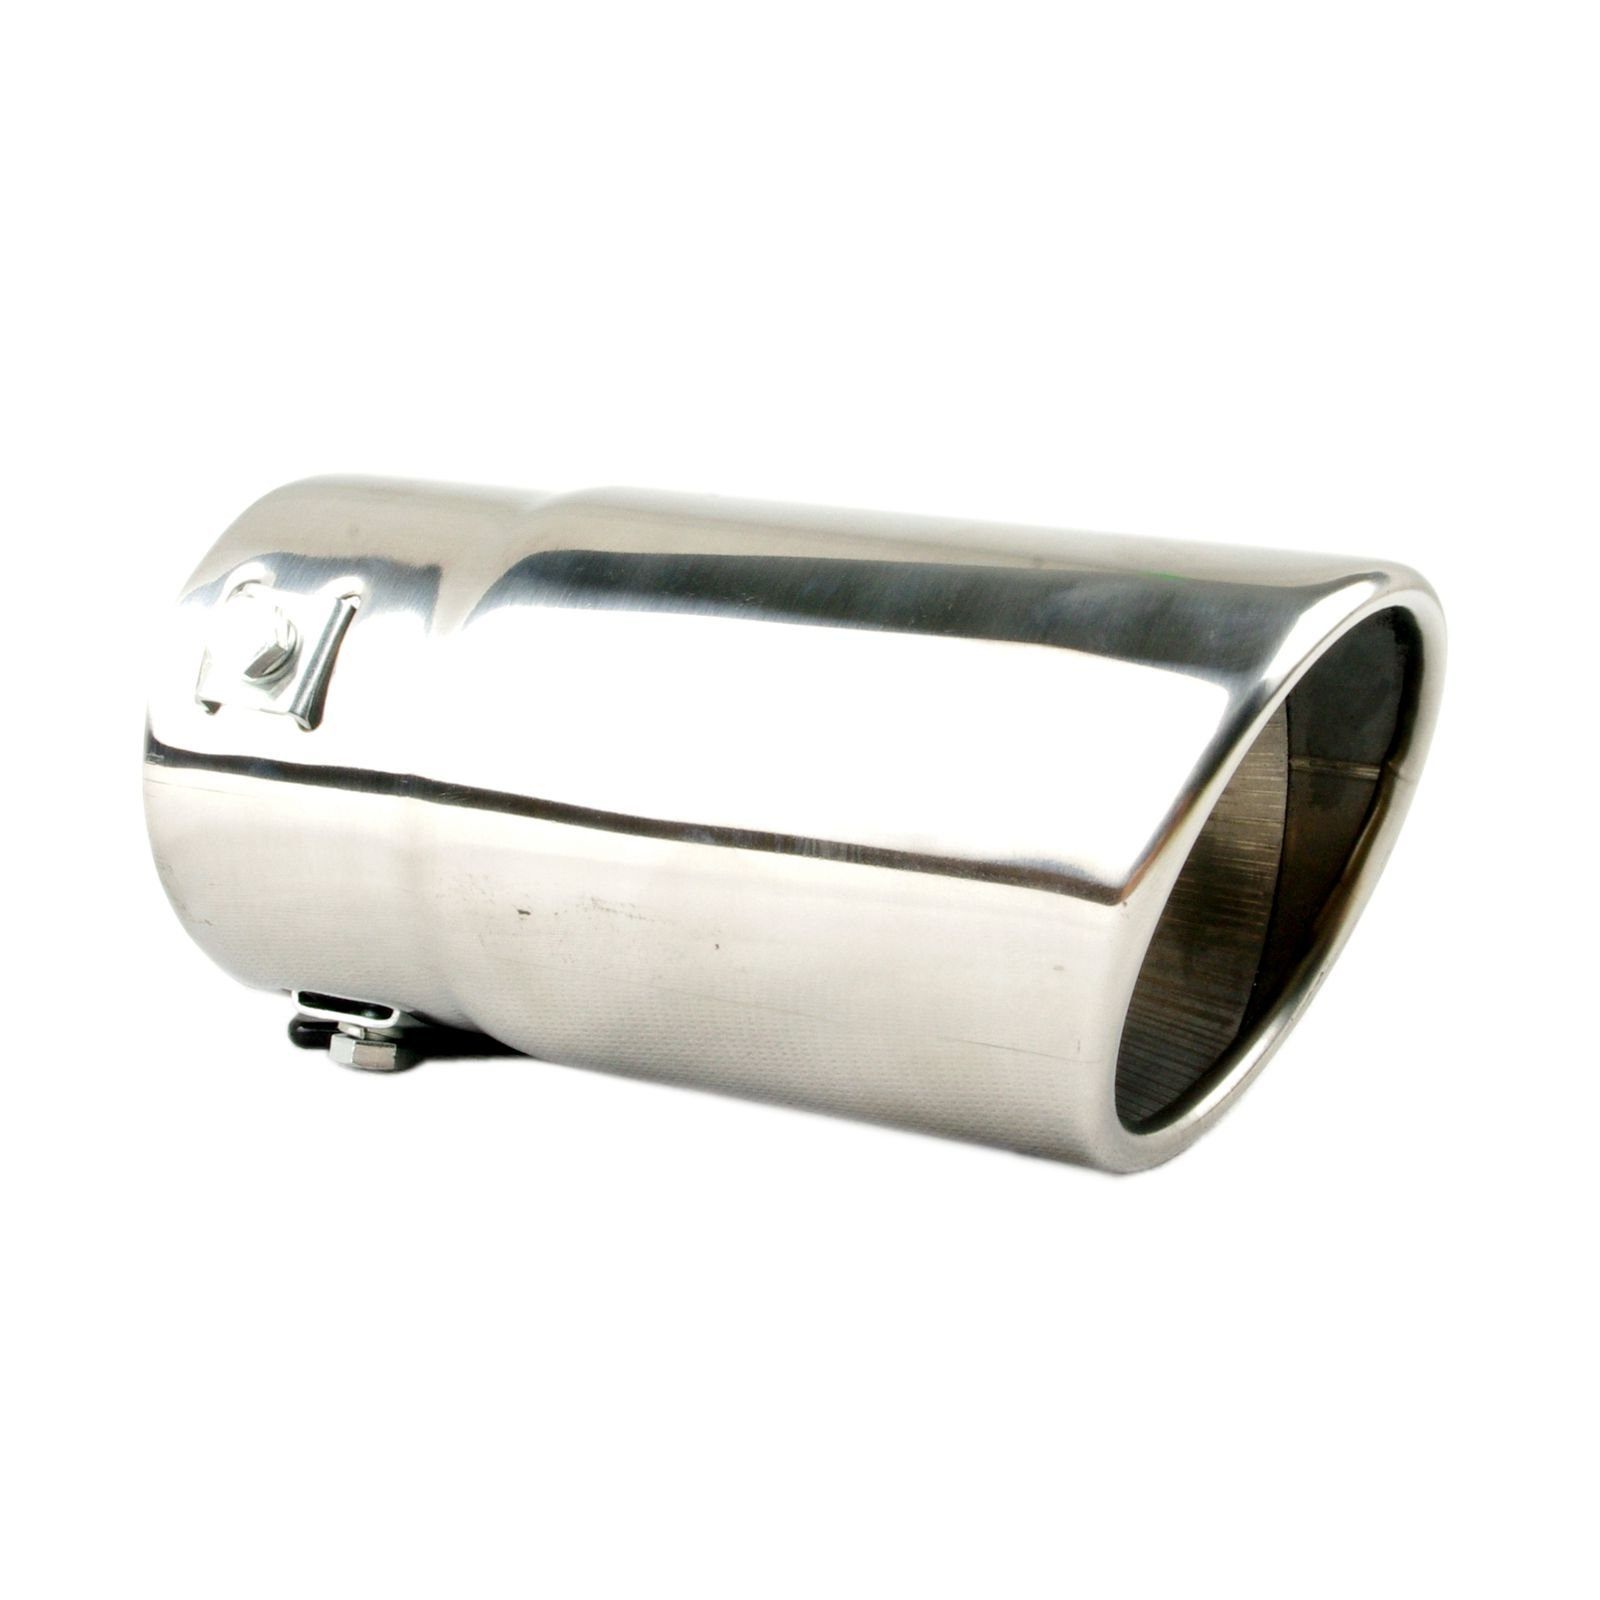 Car Muffler Tip – Stainless Steel to give Chrome Effect – To Fit 1.25 to 2.5 inch Exhaust Pipe Diameter – Installation Clamps Included by TriTrust by Tritrust